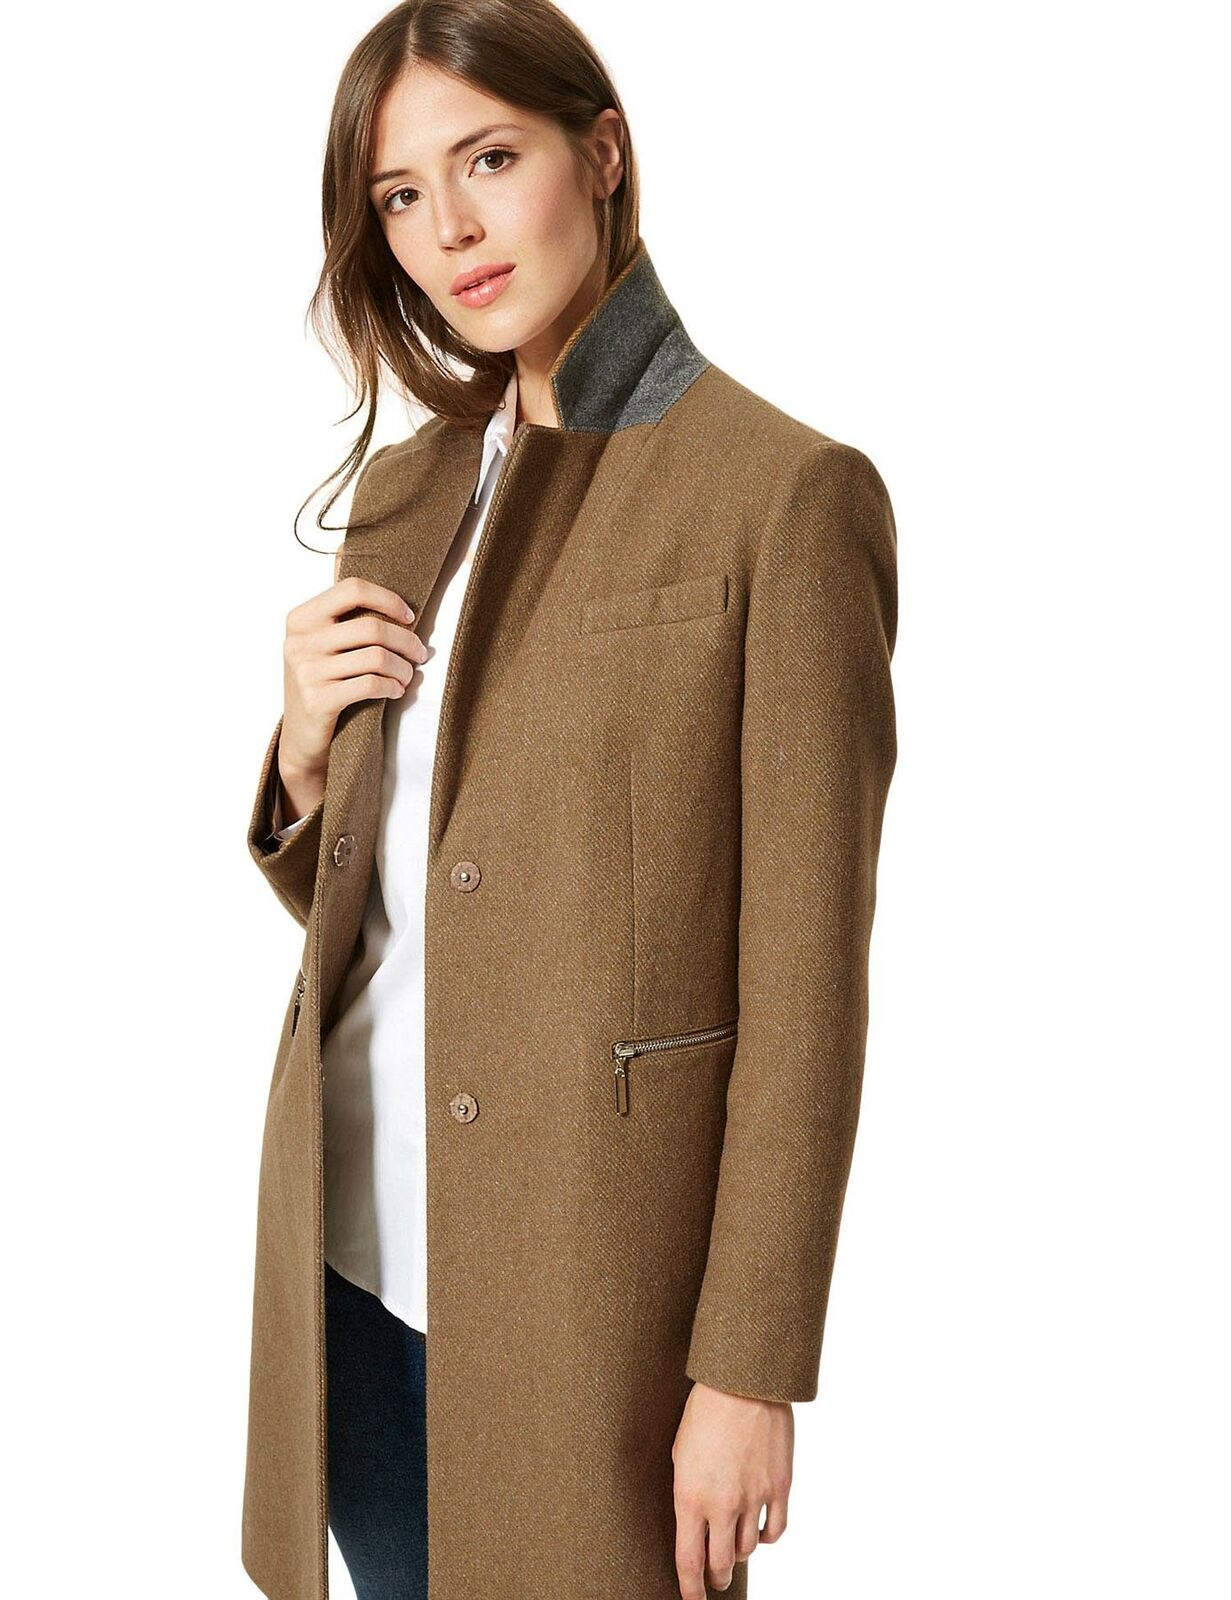 M-amp-S-Wool-Blend-Single-Breasted-Pink-Brown-Winter-Coat-Holly-Willoughby-Size-6-24 thumbnail 19